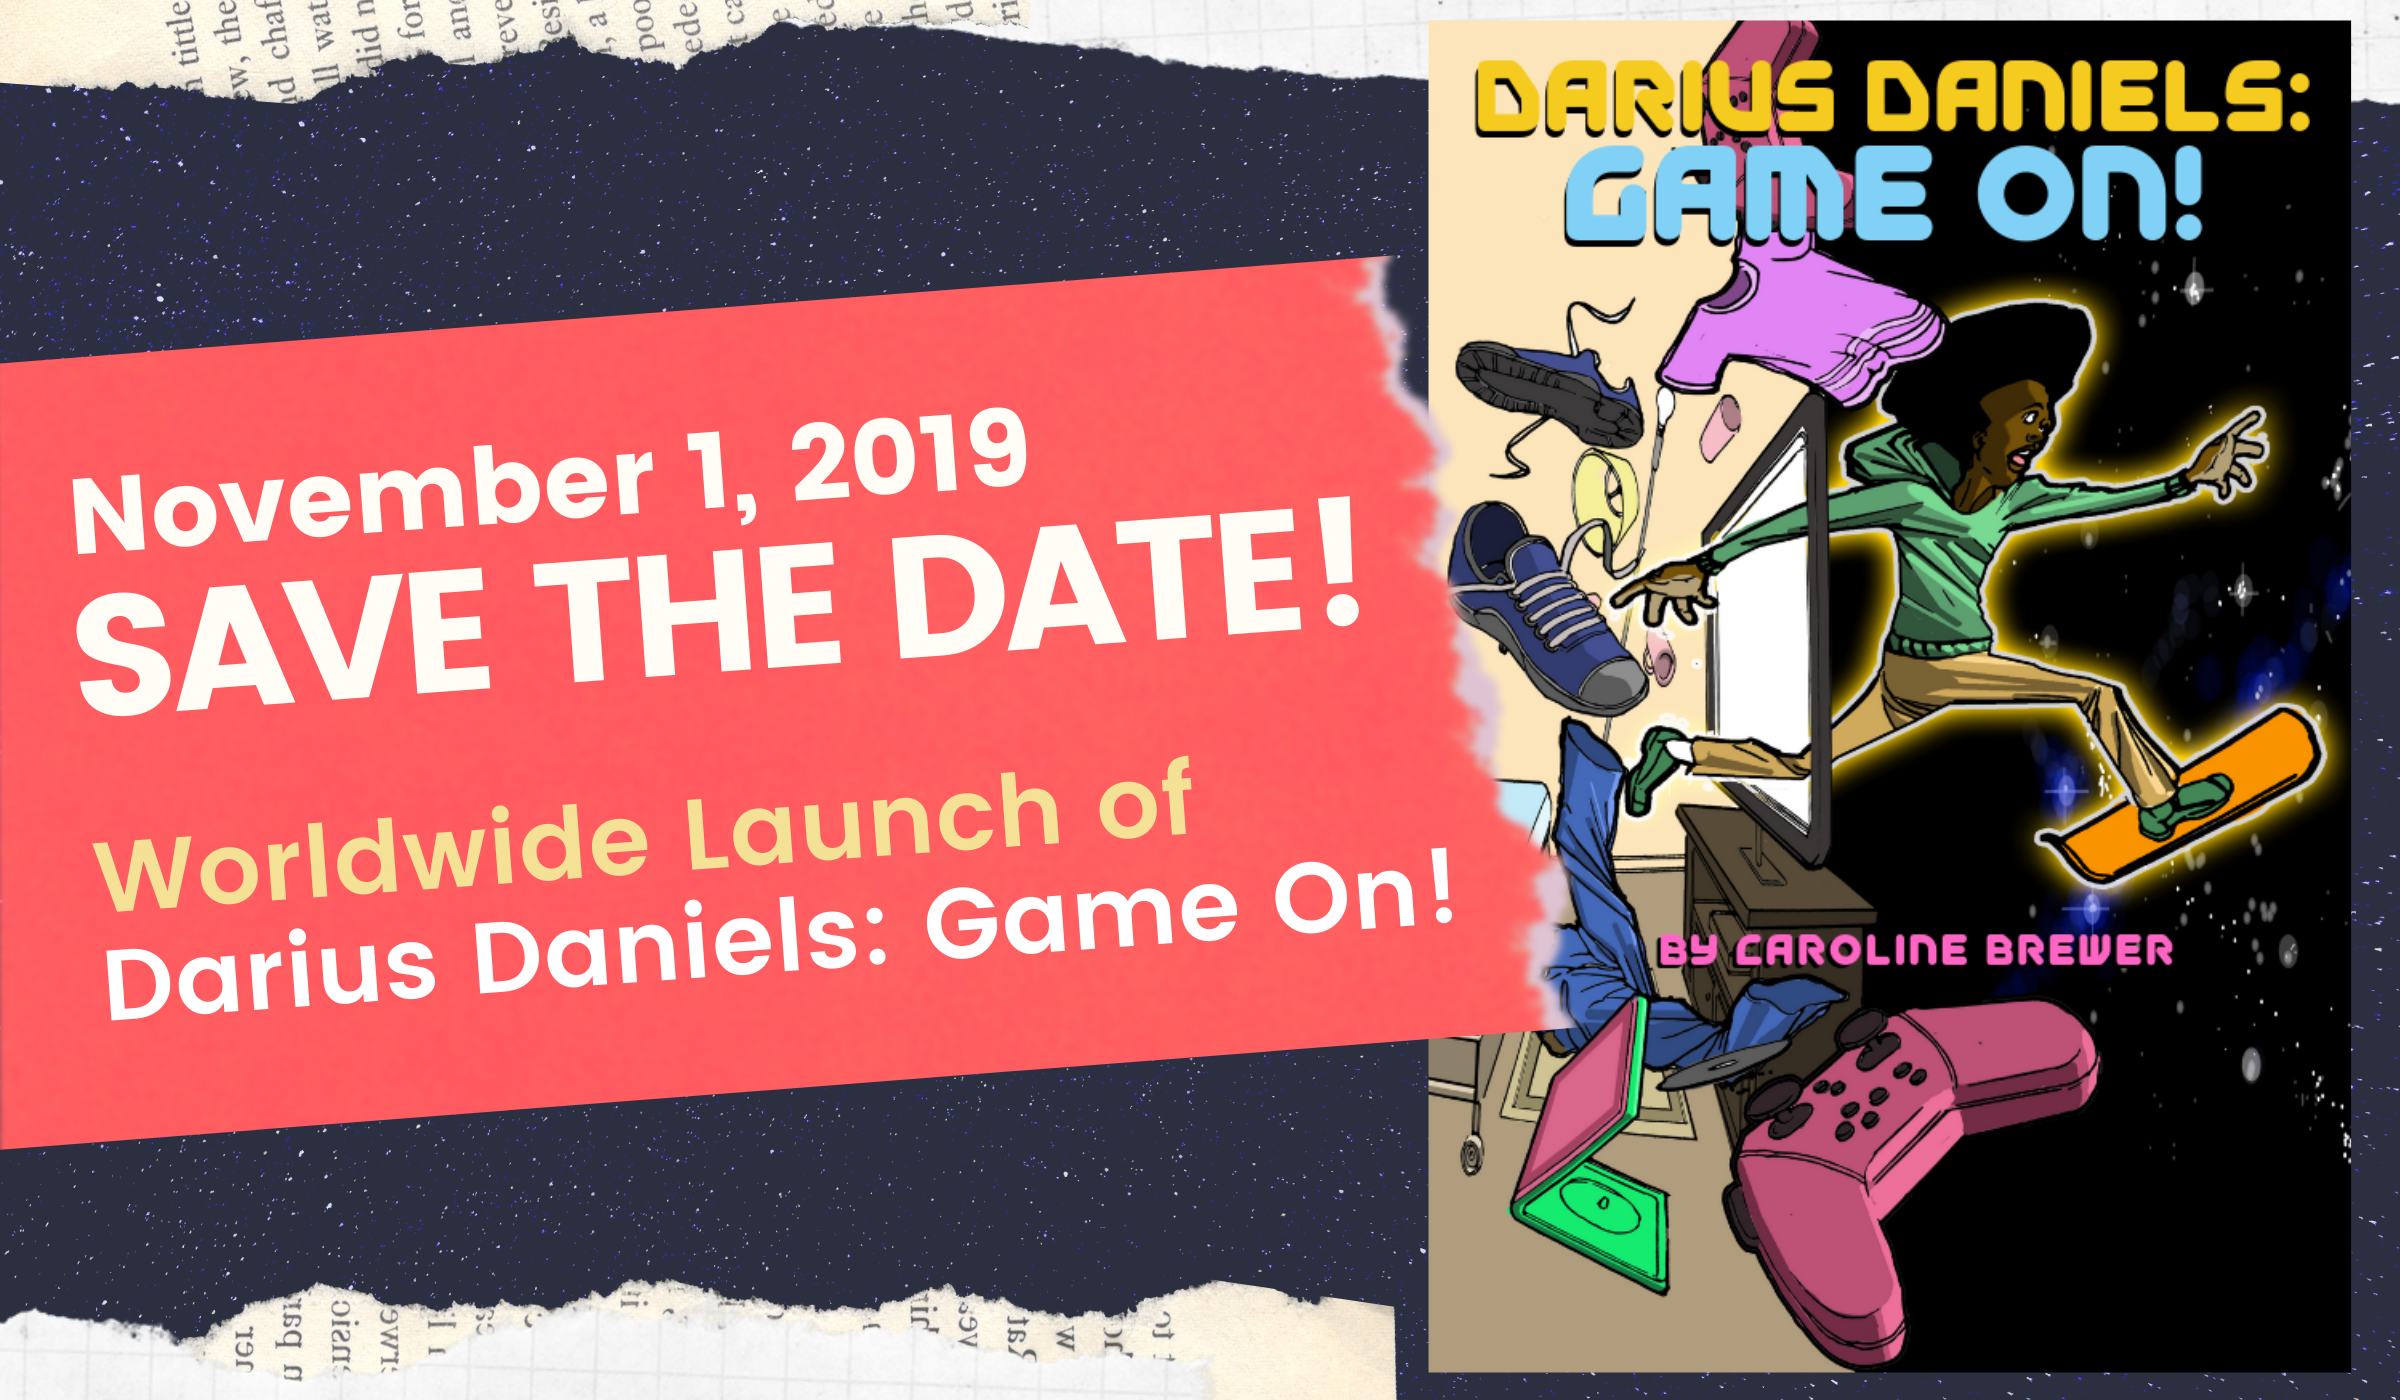 Darius Daniels: Game On! - Save the Date for the November 1, 2019 release